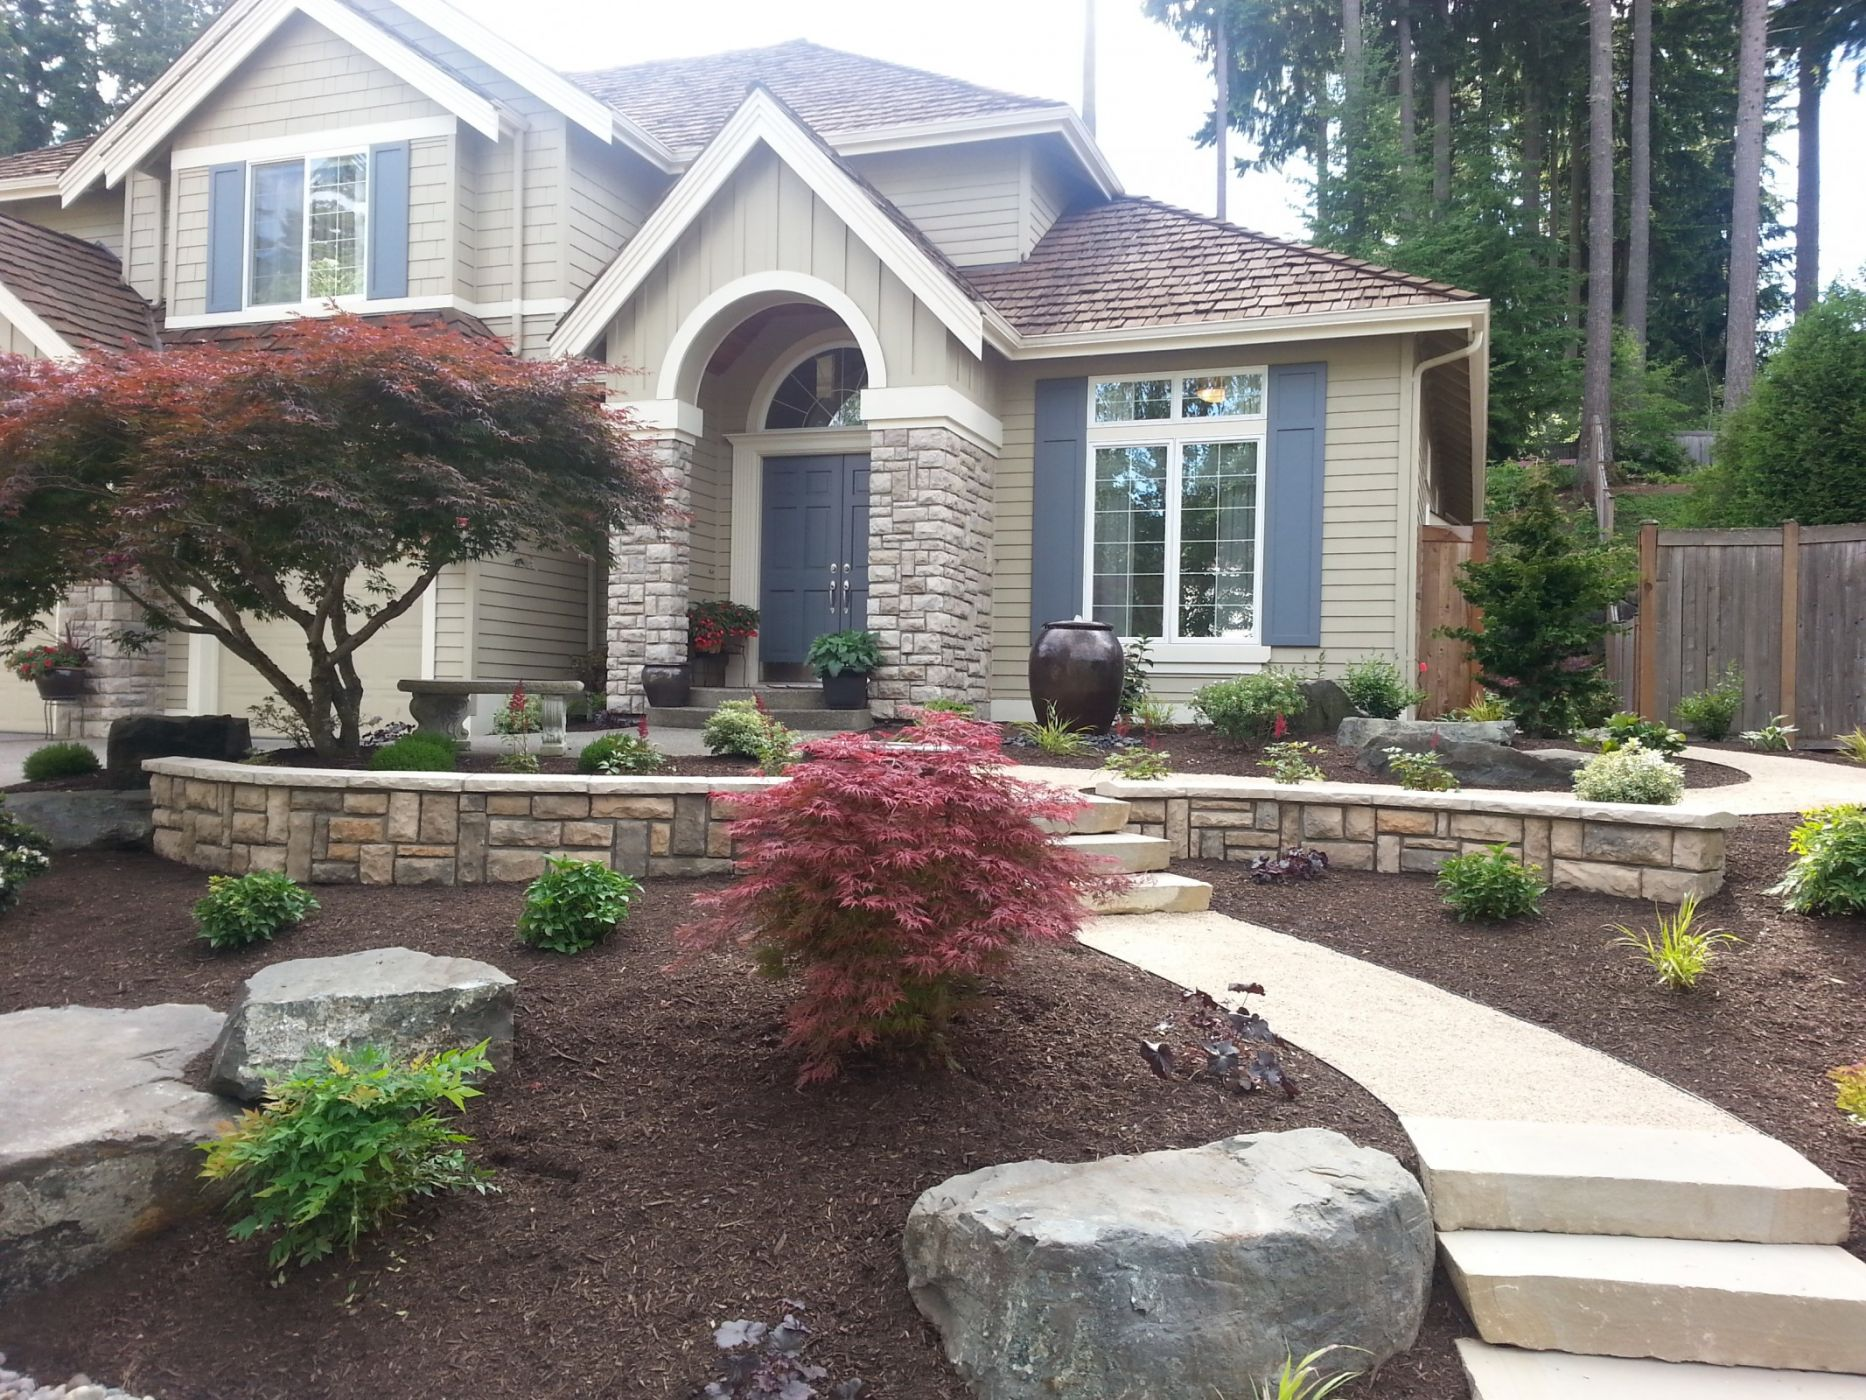 Janika landscaping ideas front yard illinois here for Ideas for my front garden